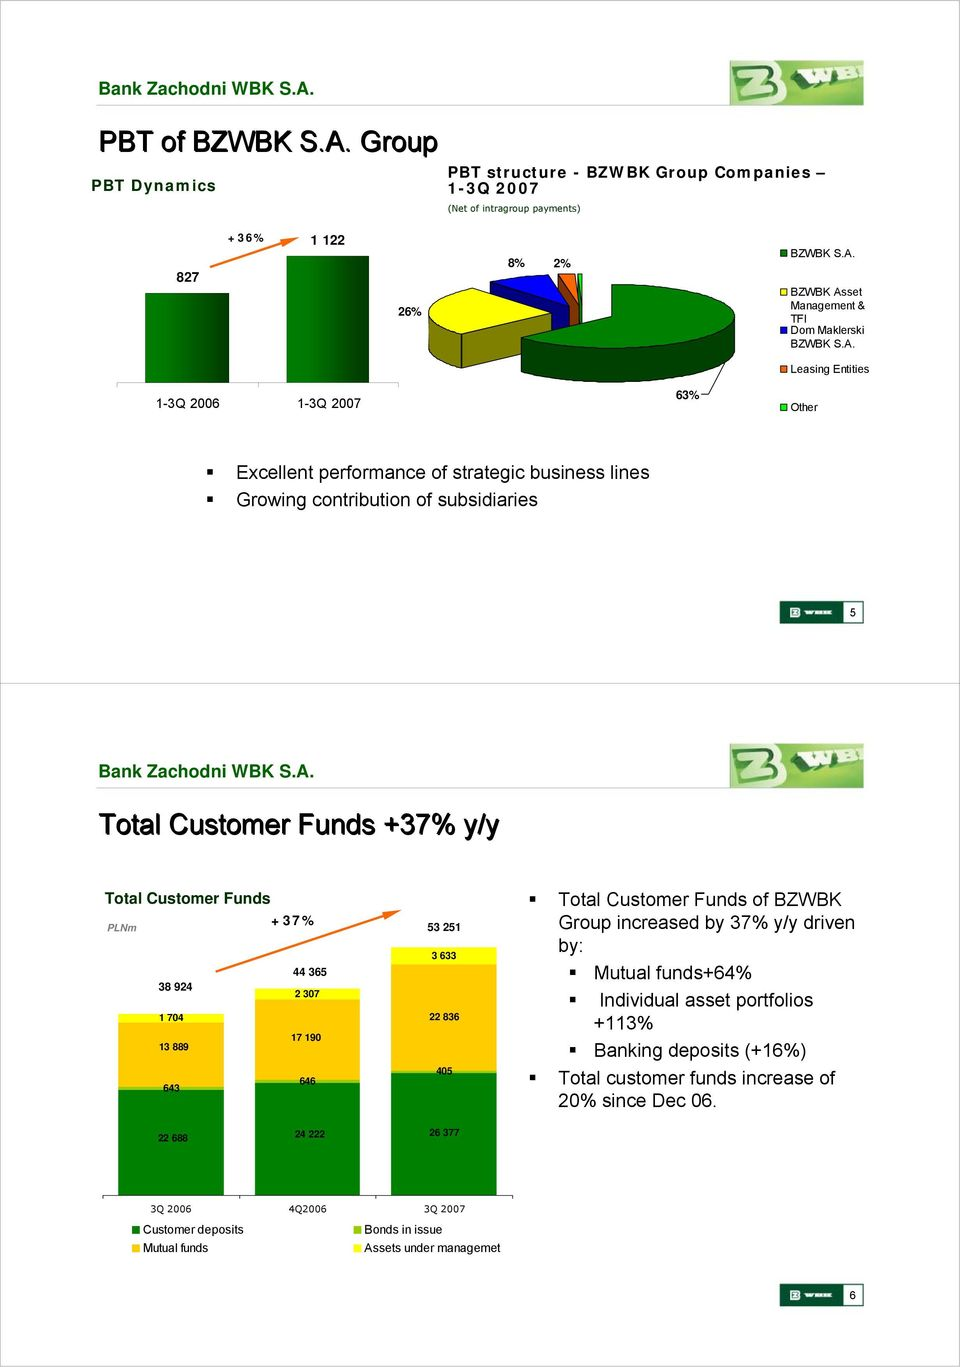 2 307 1 704 17 190 13 889 646 643 53 251 3 633 22 836 405 Total Customer Funds of BZWBK Group increased by 37% y/y driven by: Mutual funds+64% Individual asset portfolios +113% Banking